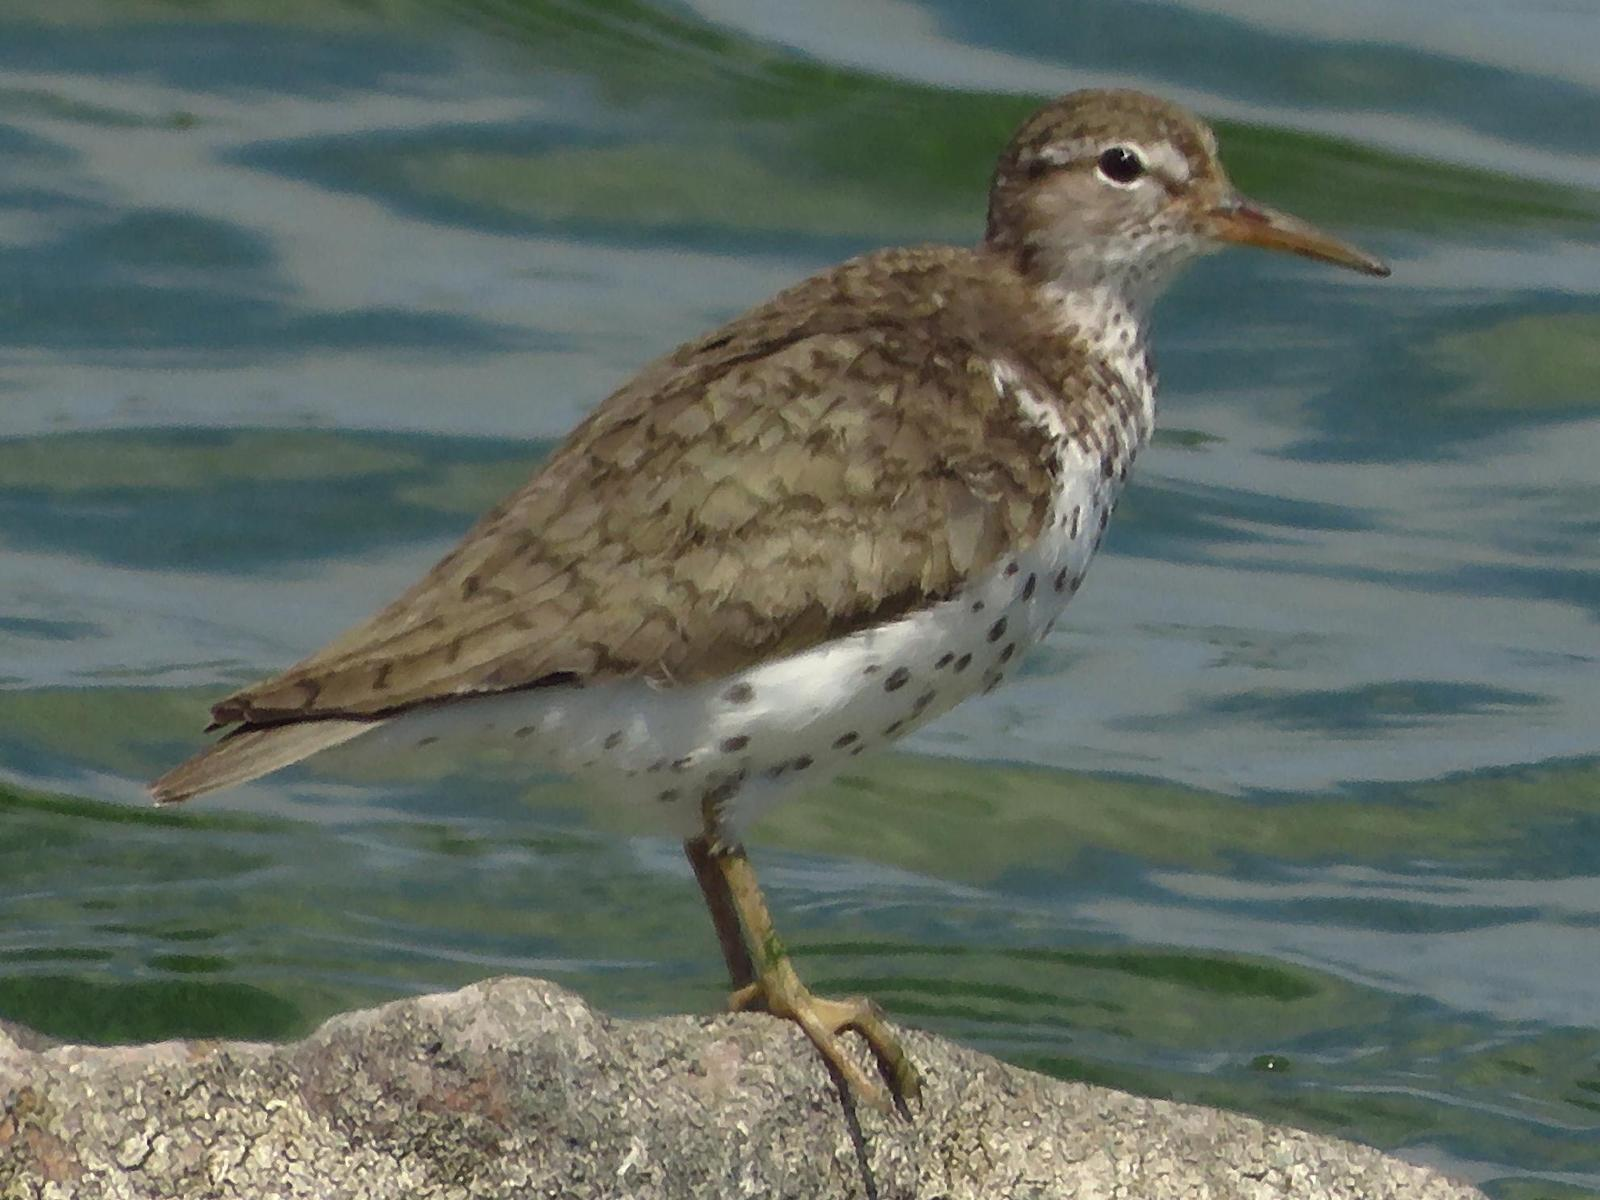 Spotted Sandpiper Photo by Bob Neugebauer